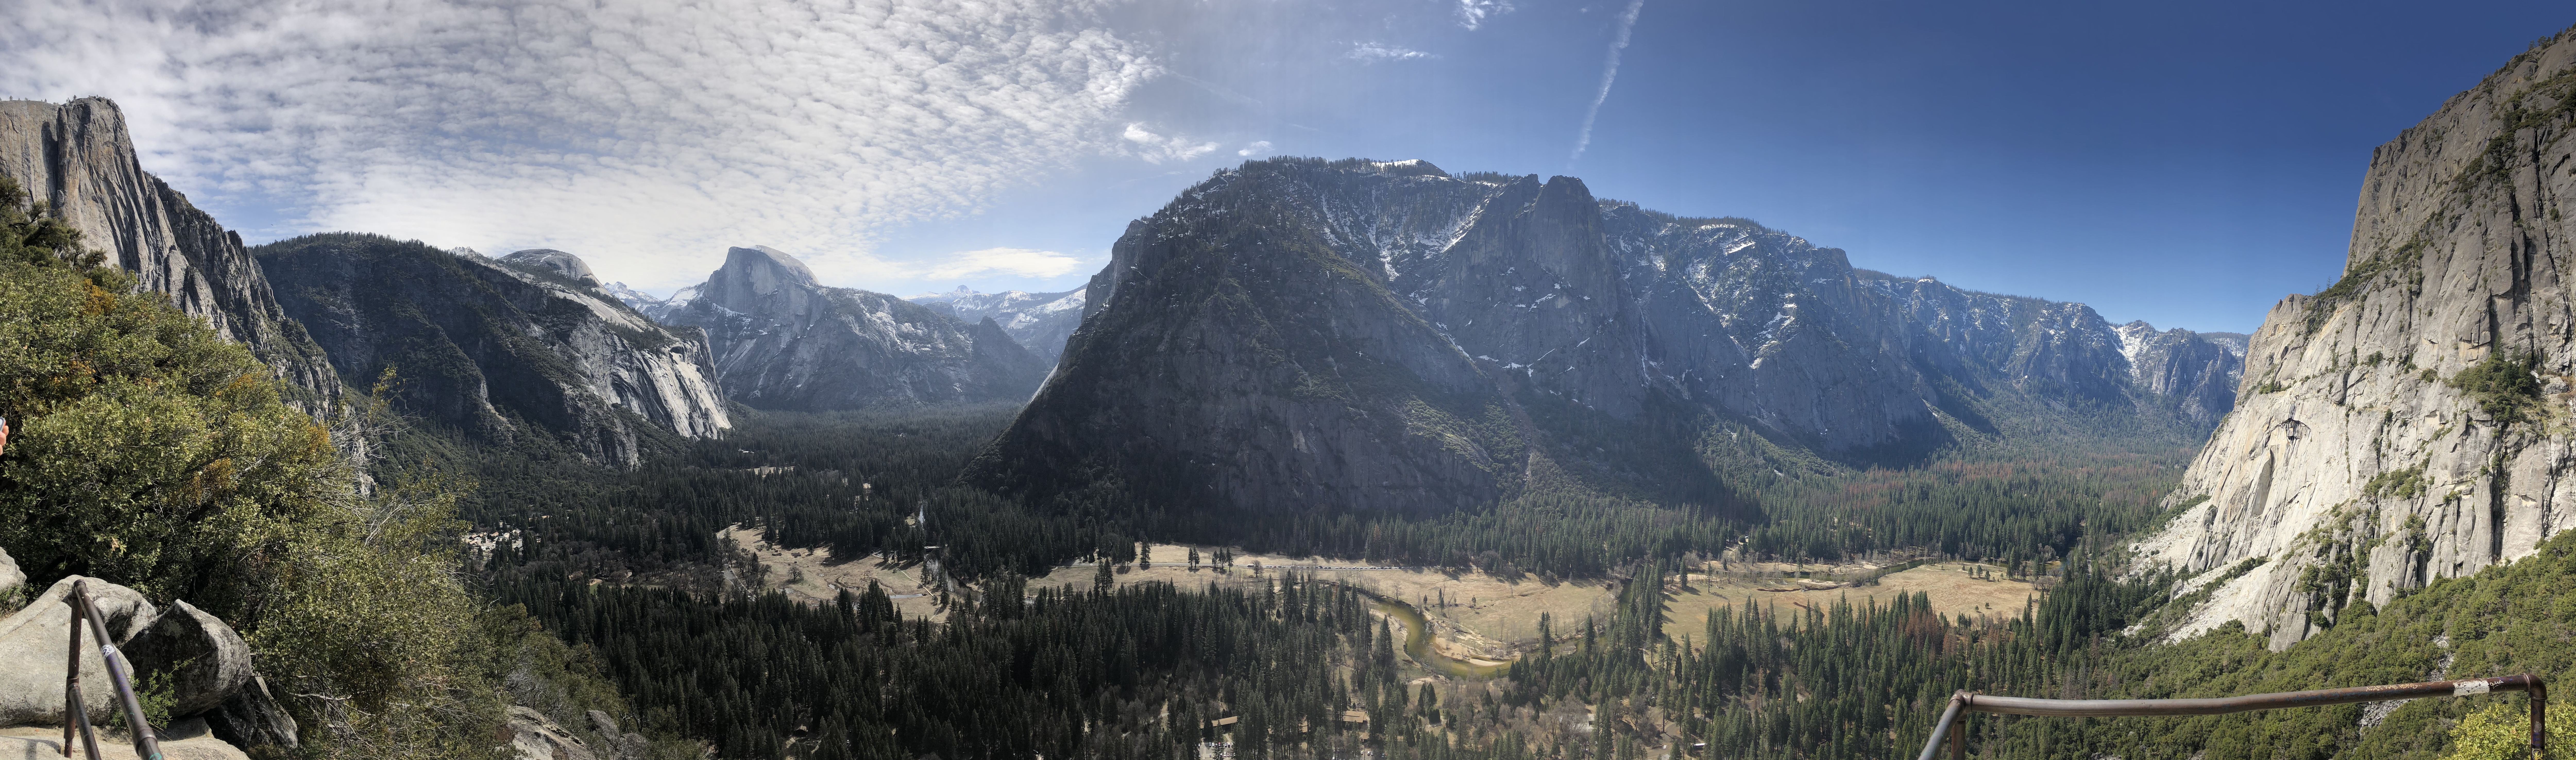 a panoramic view of Yosemite Valley taken near the top of Lower Fall